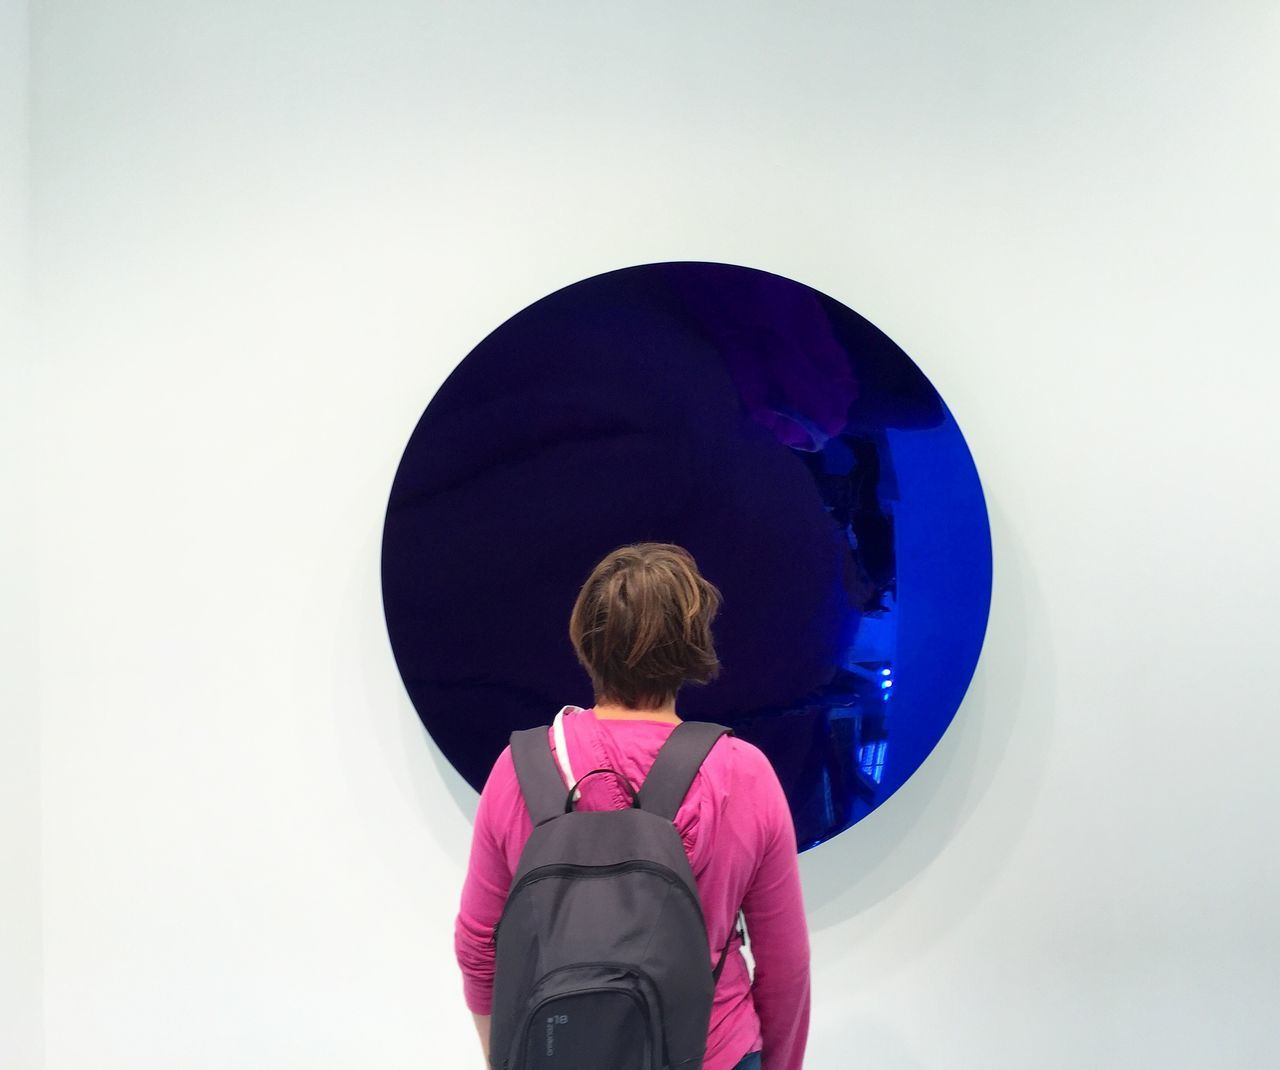 Art Inspection Art Fiac Anish Kapoor People People Watching People Watching Art My Favorite Photo